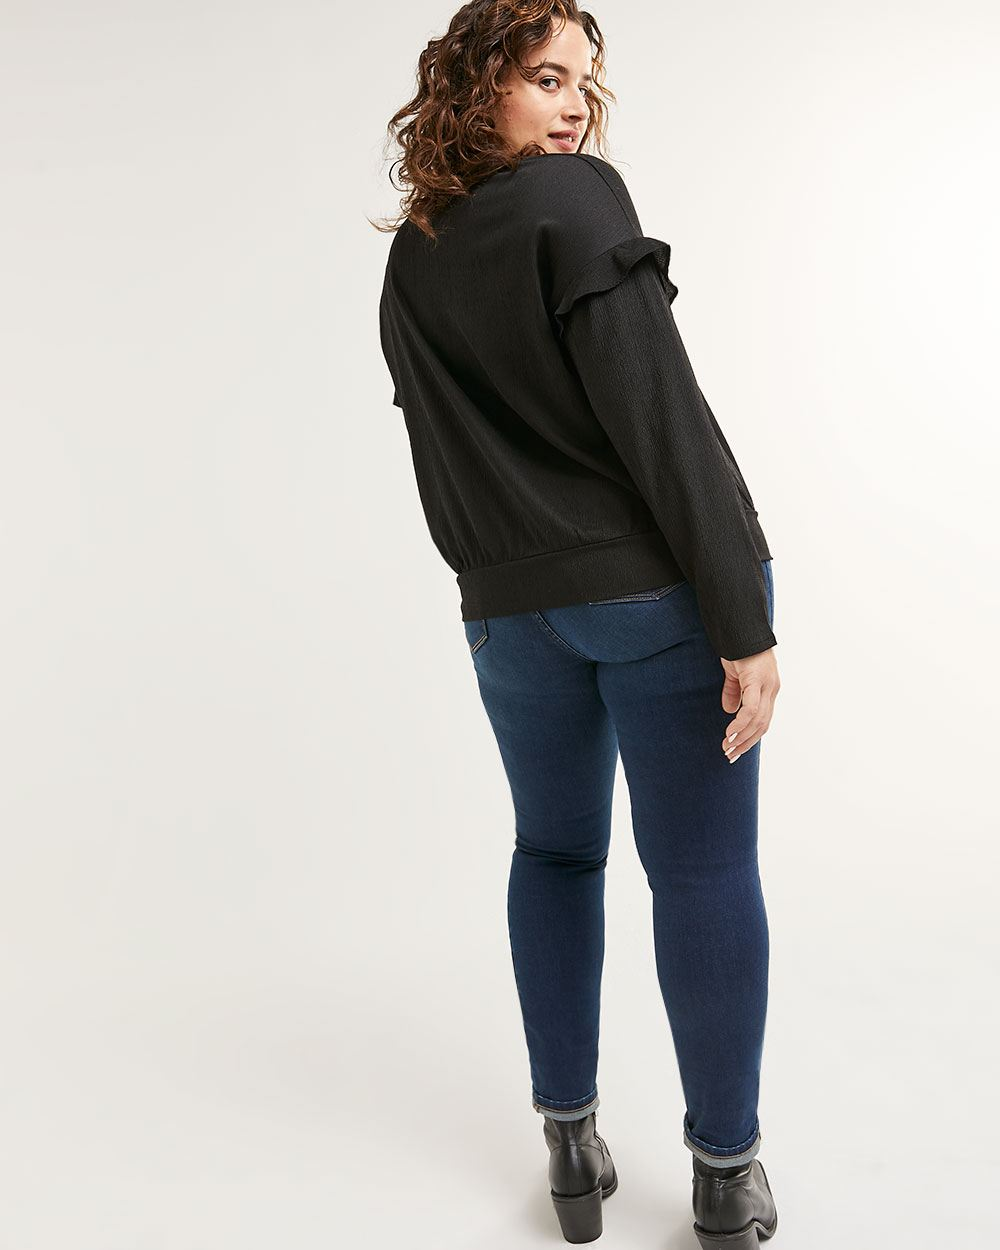 Long Sleeve Crew Neck Top with Ruffles